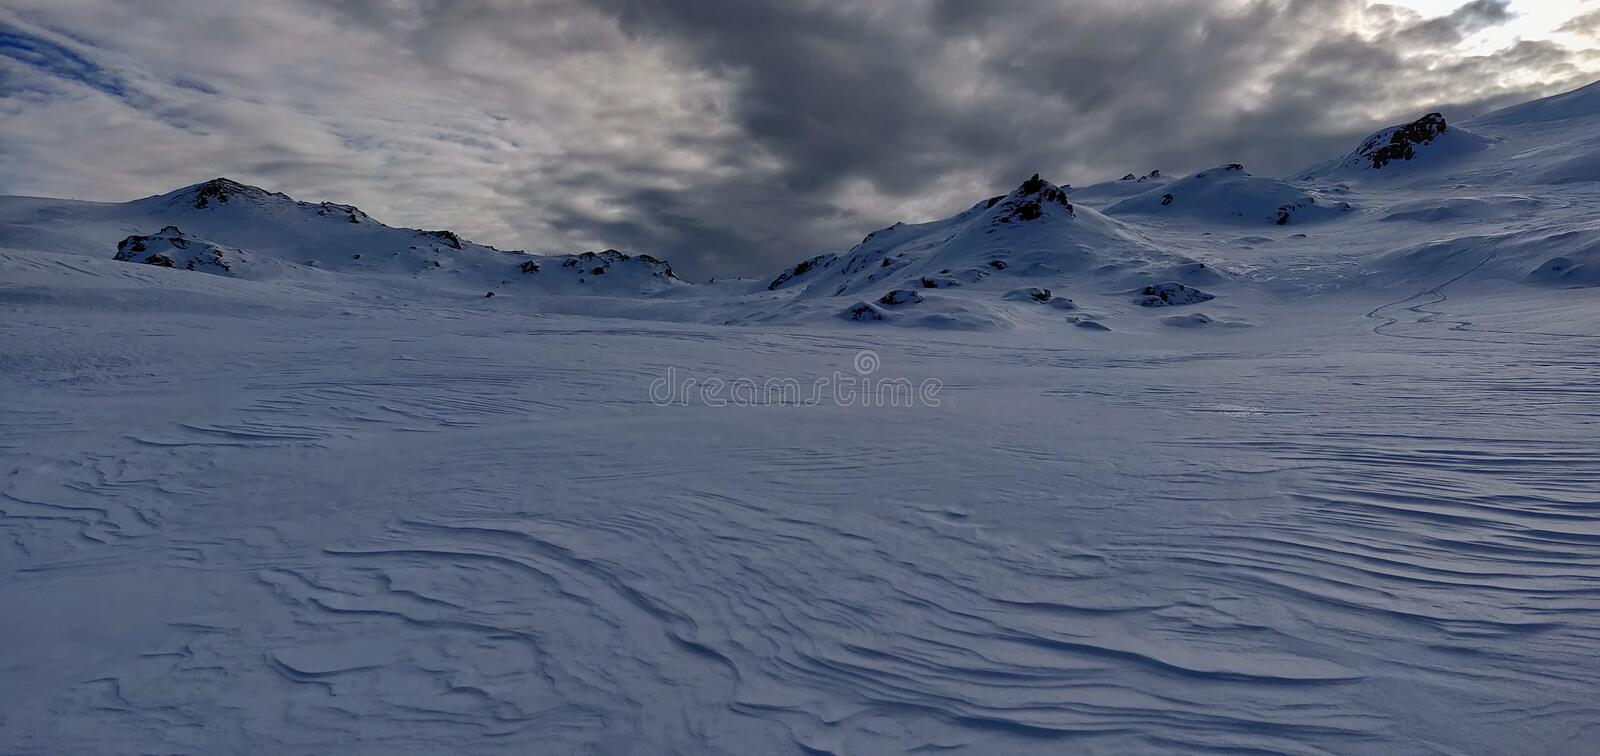 Ice and snow desert in Tirol royalty free stock photography